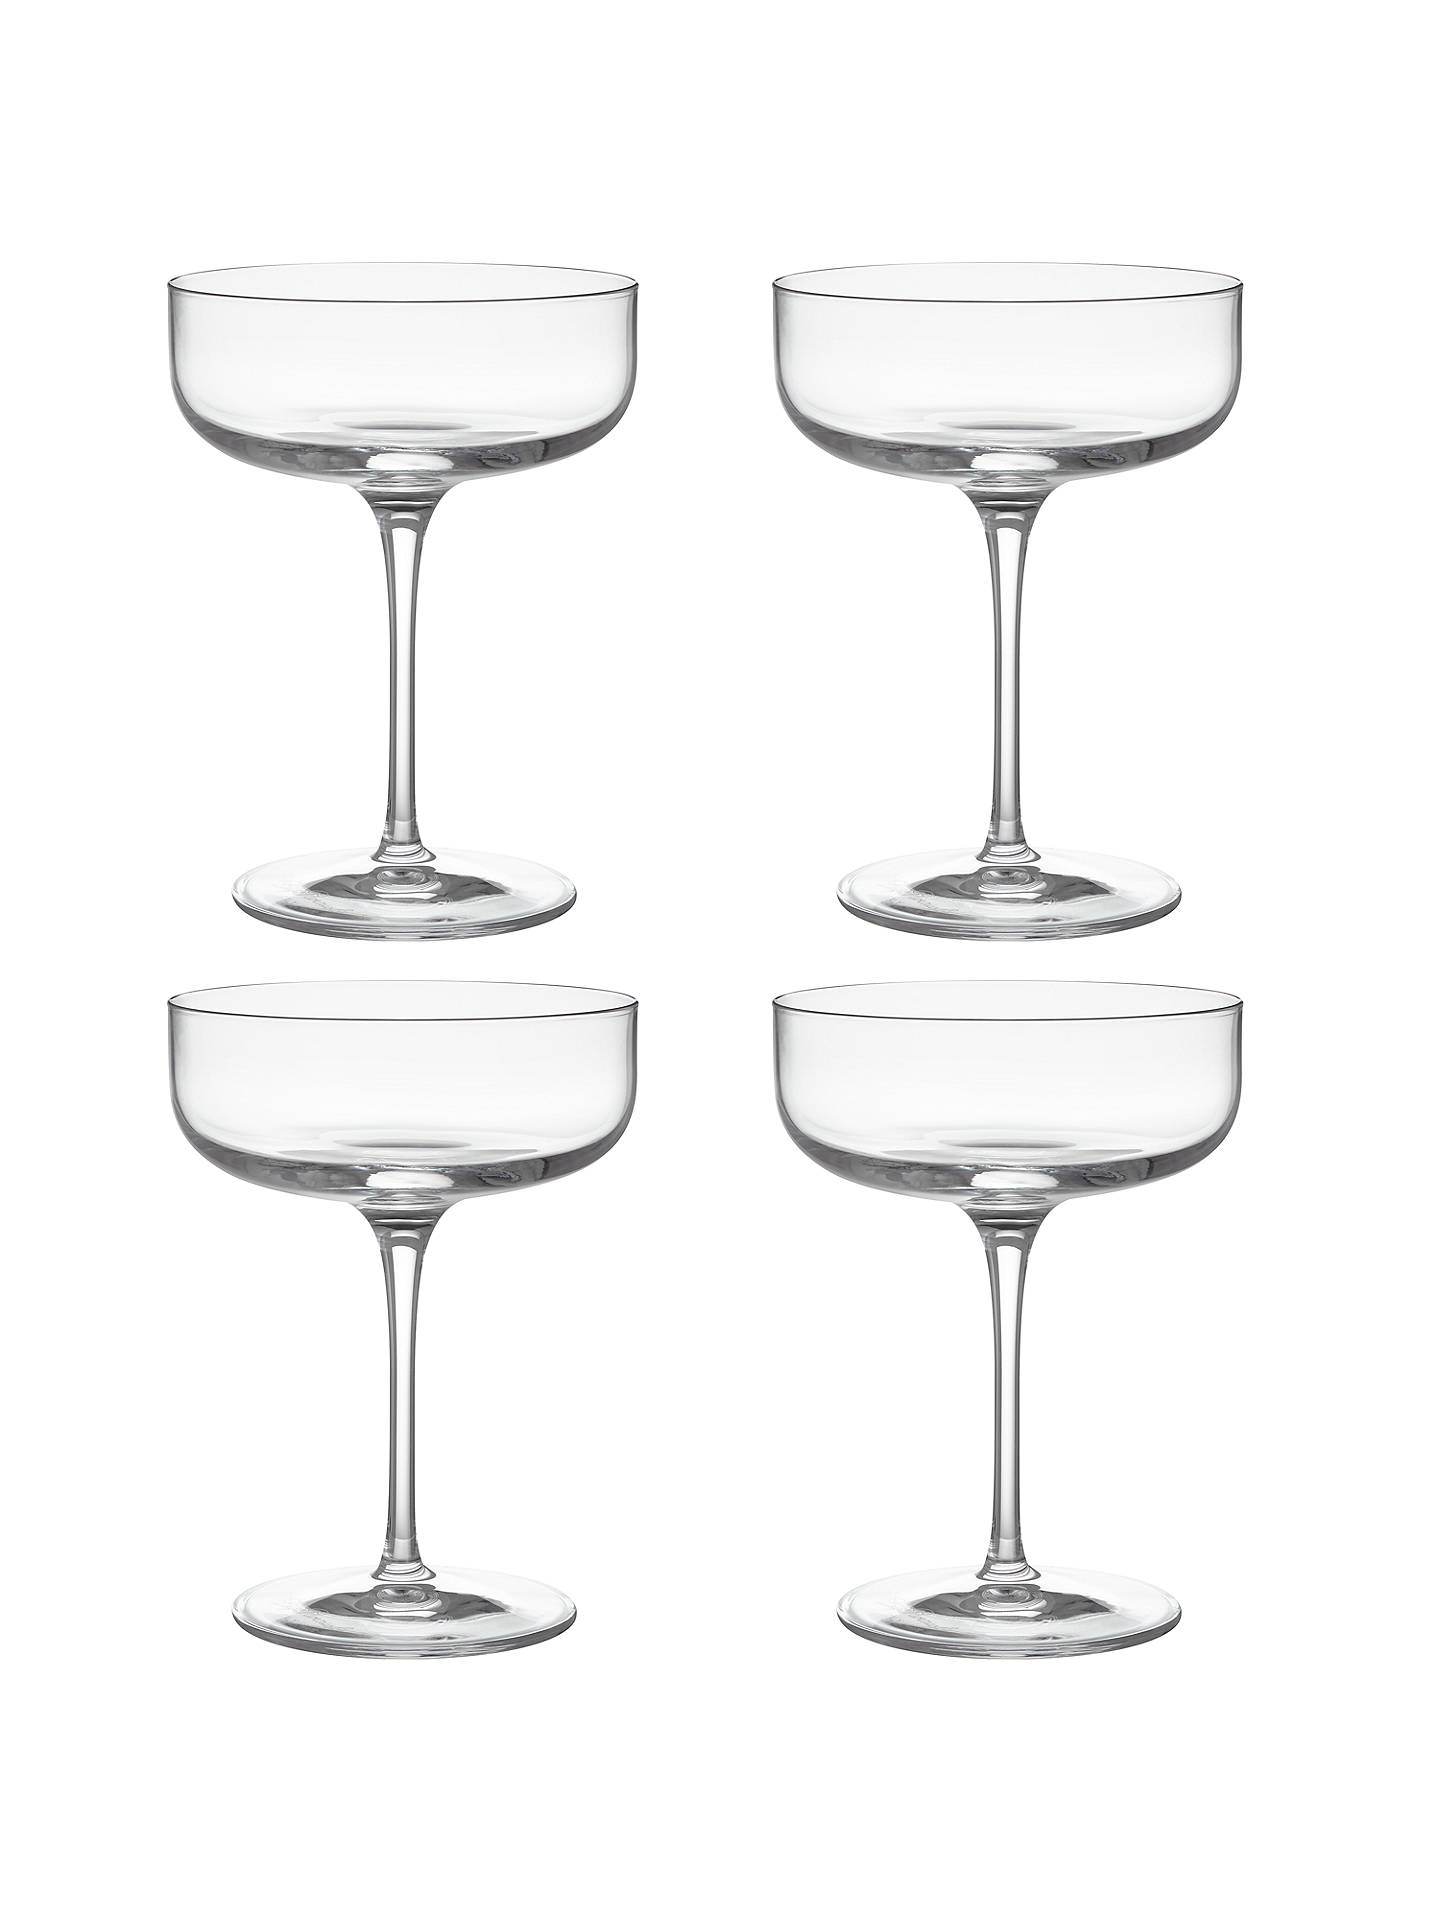 BuyJohn Lewis Sublime Champagne Saucers, Clear, 300ml, Set of 4 Online at johnlewis.com